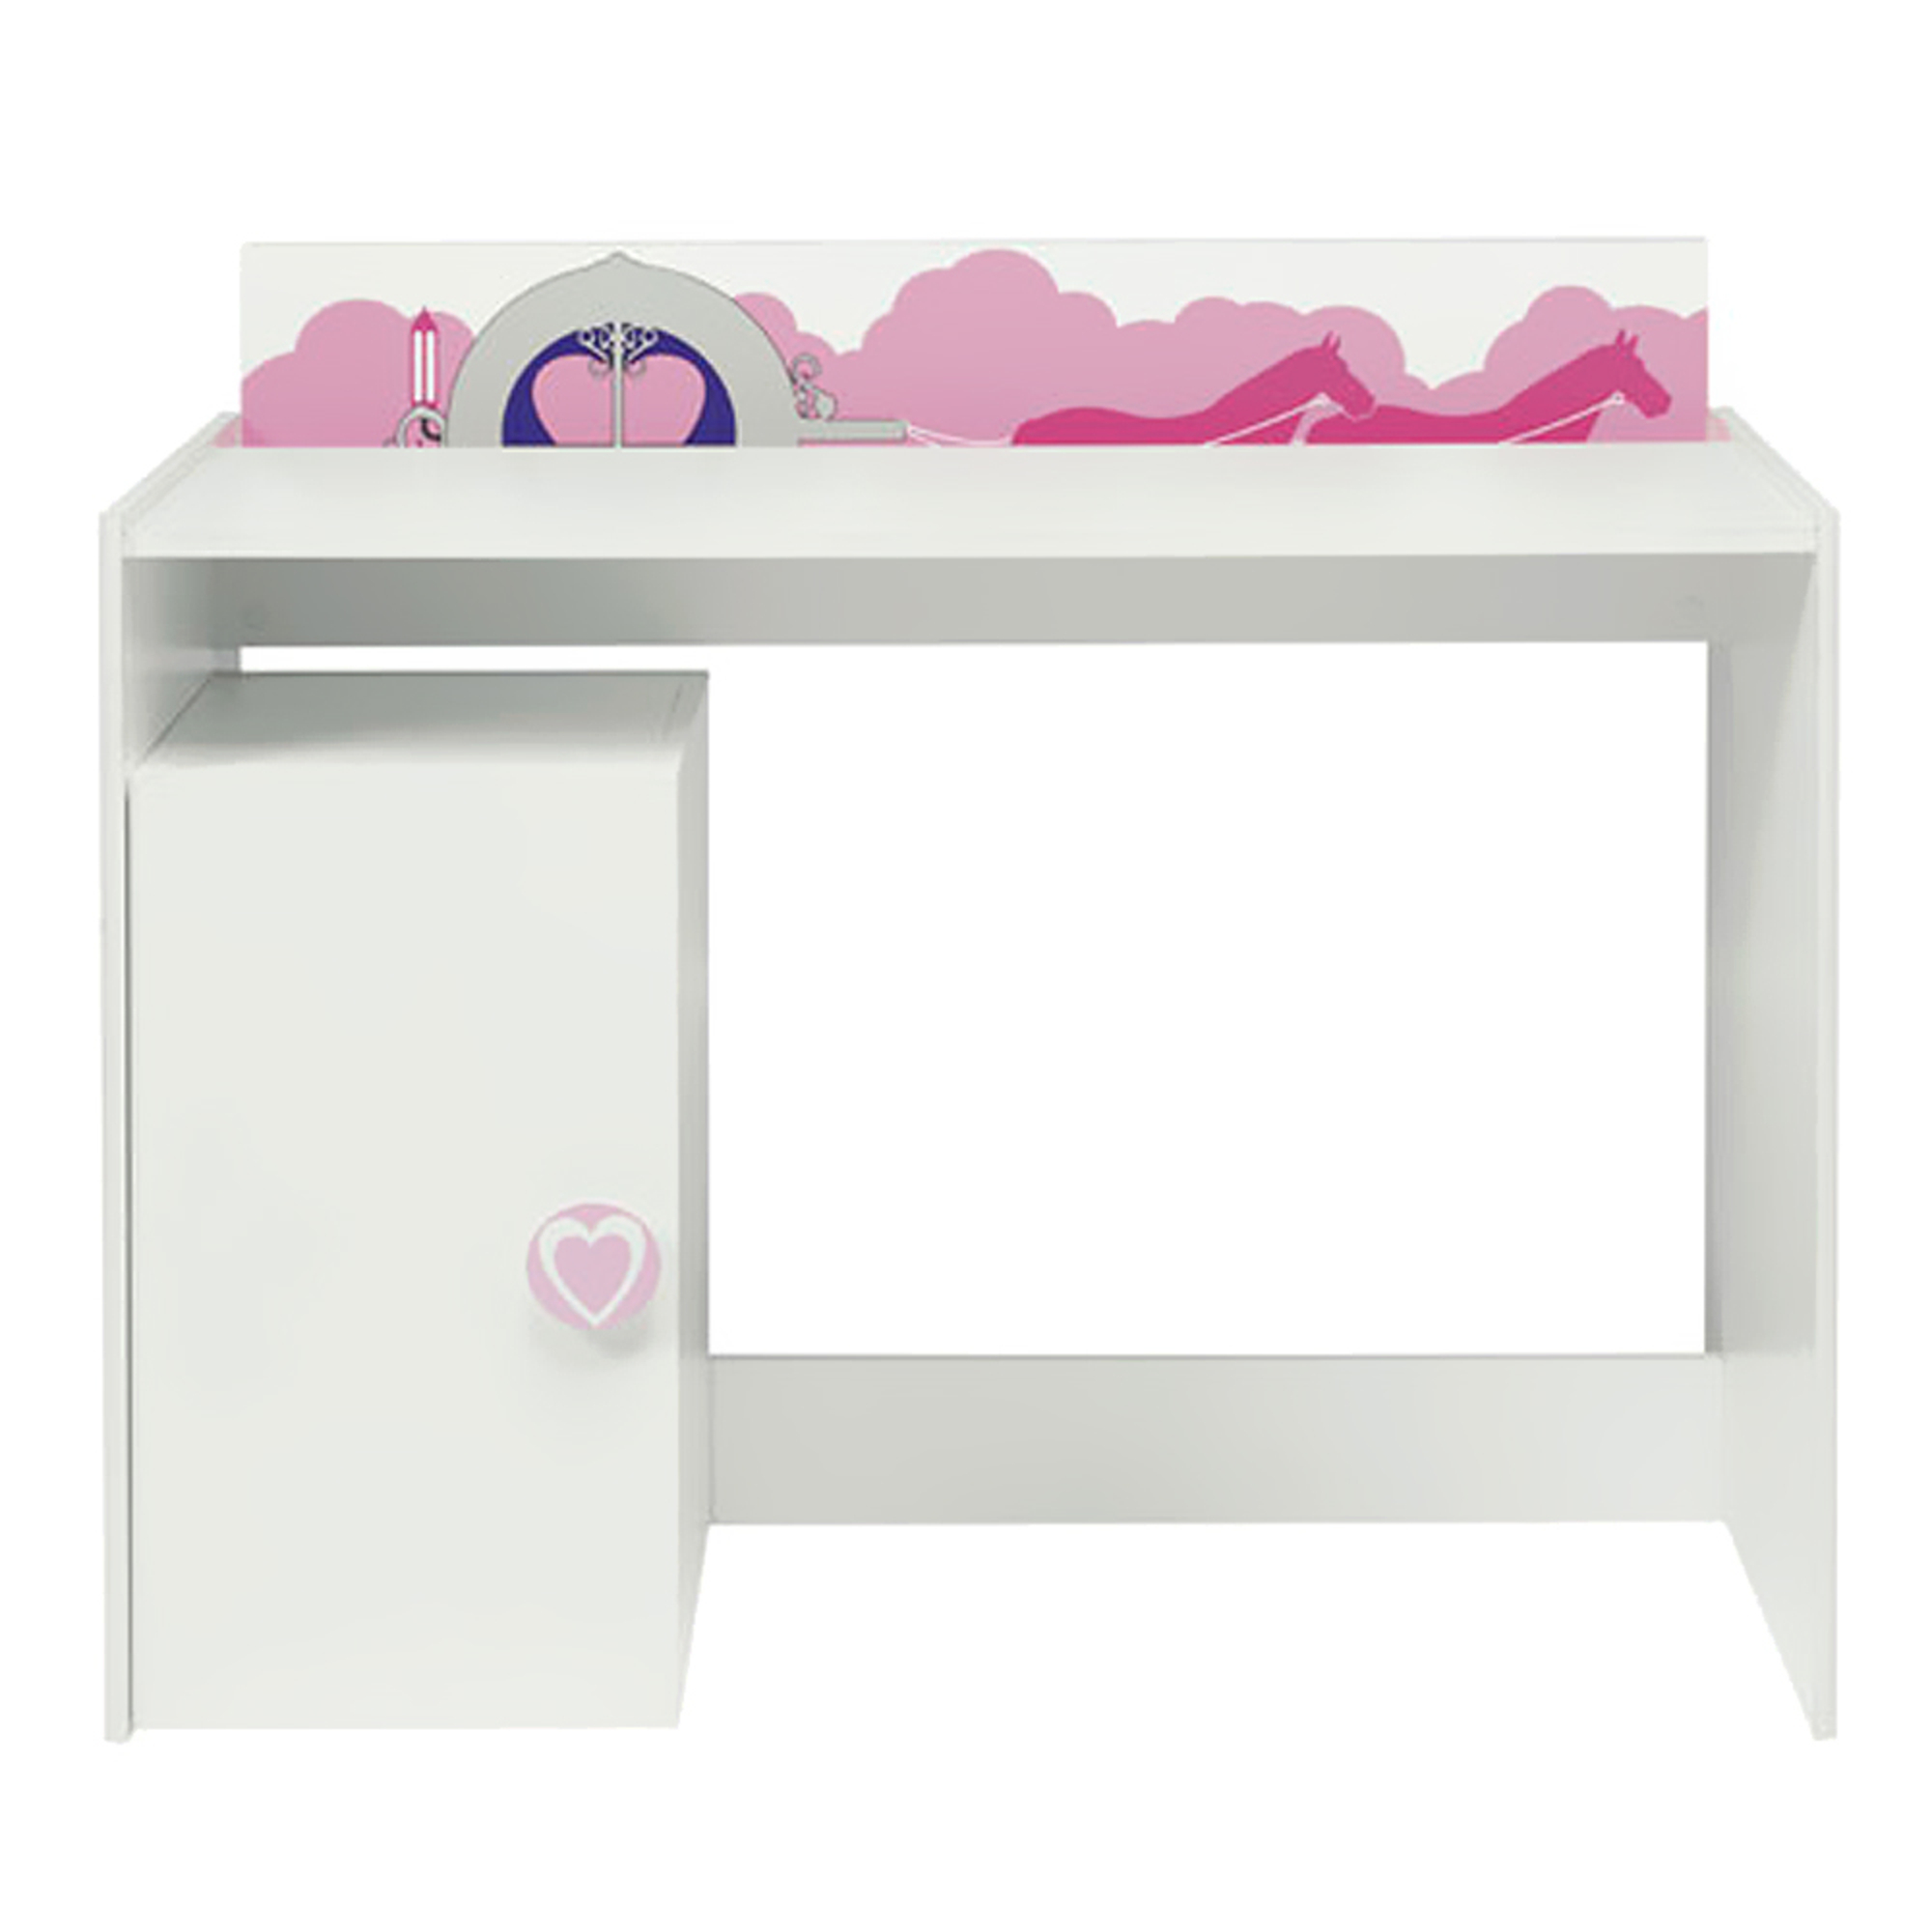 bureau fille blanc simple bureau enfant en bois blanc l cm berlingot with bureau fille blanc. Black Bedroom Furniture Sets. Home Design Ideas